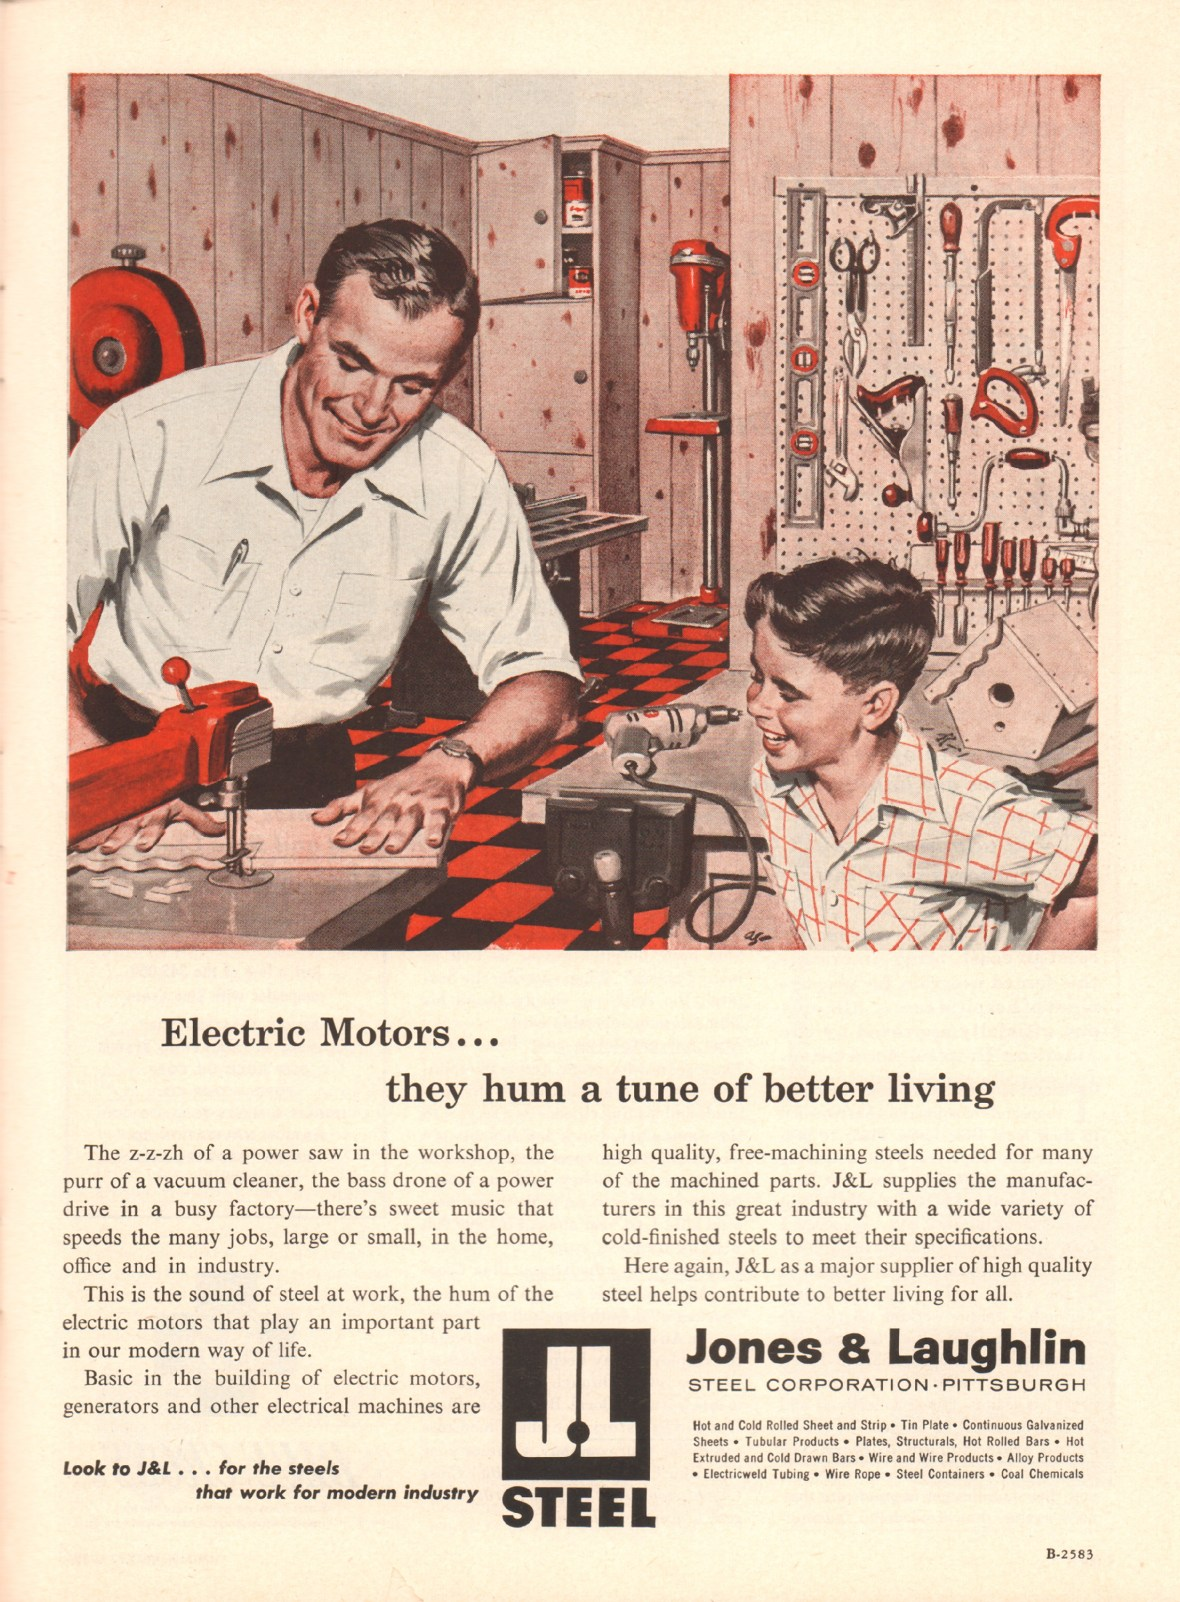 Jones and Laughlin Steel Corporation - published in Time - May 21, 1956